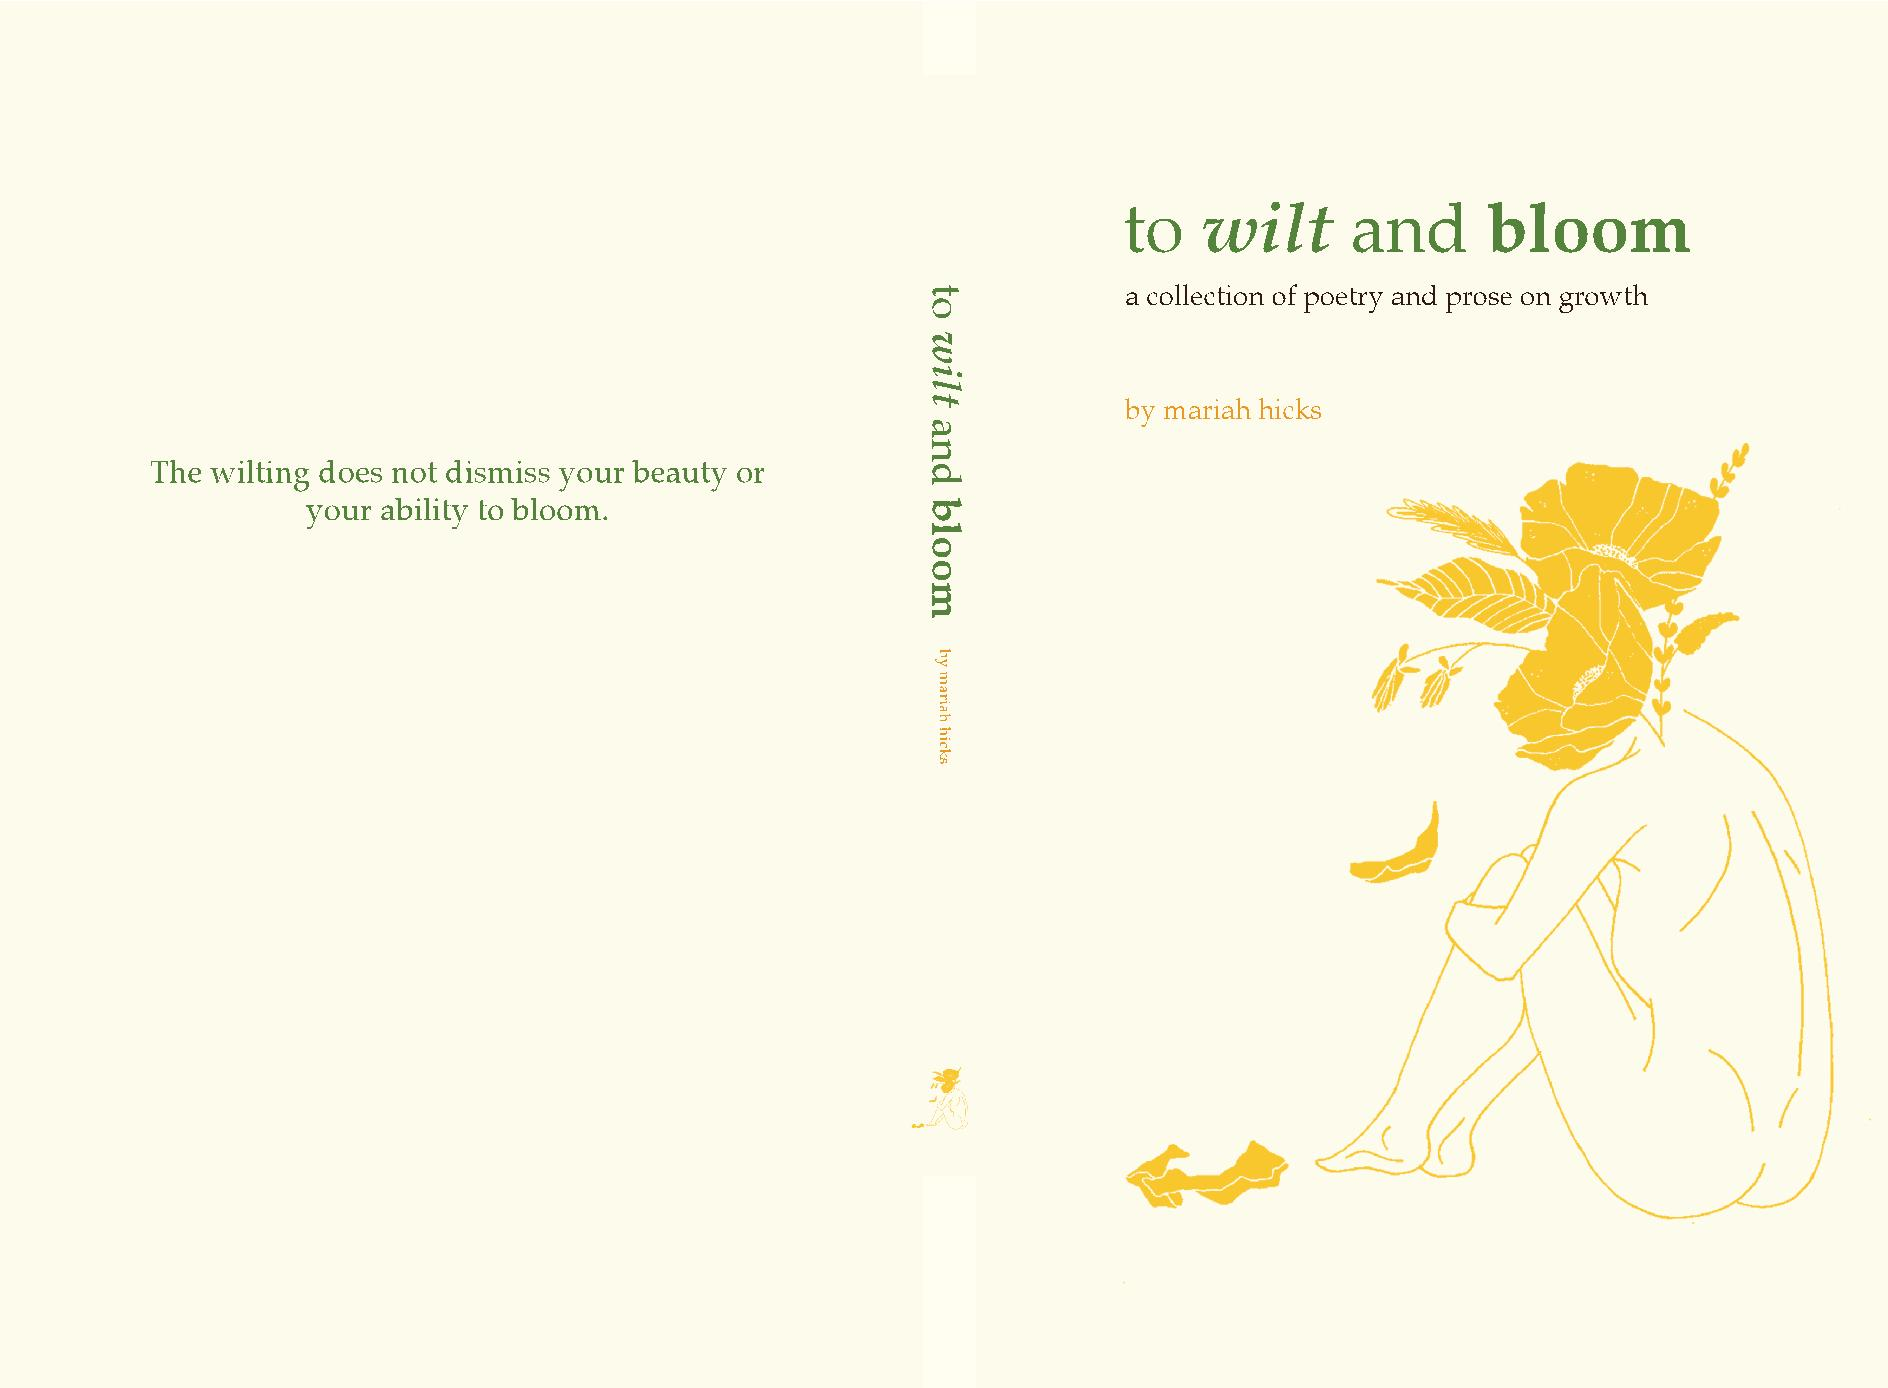 Shifted Spine V3_New Cover_Version 1_To Wilt and Bloom_Mariah Hicks Book Design-page-001.jpg